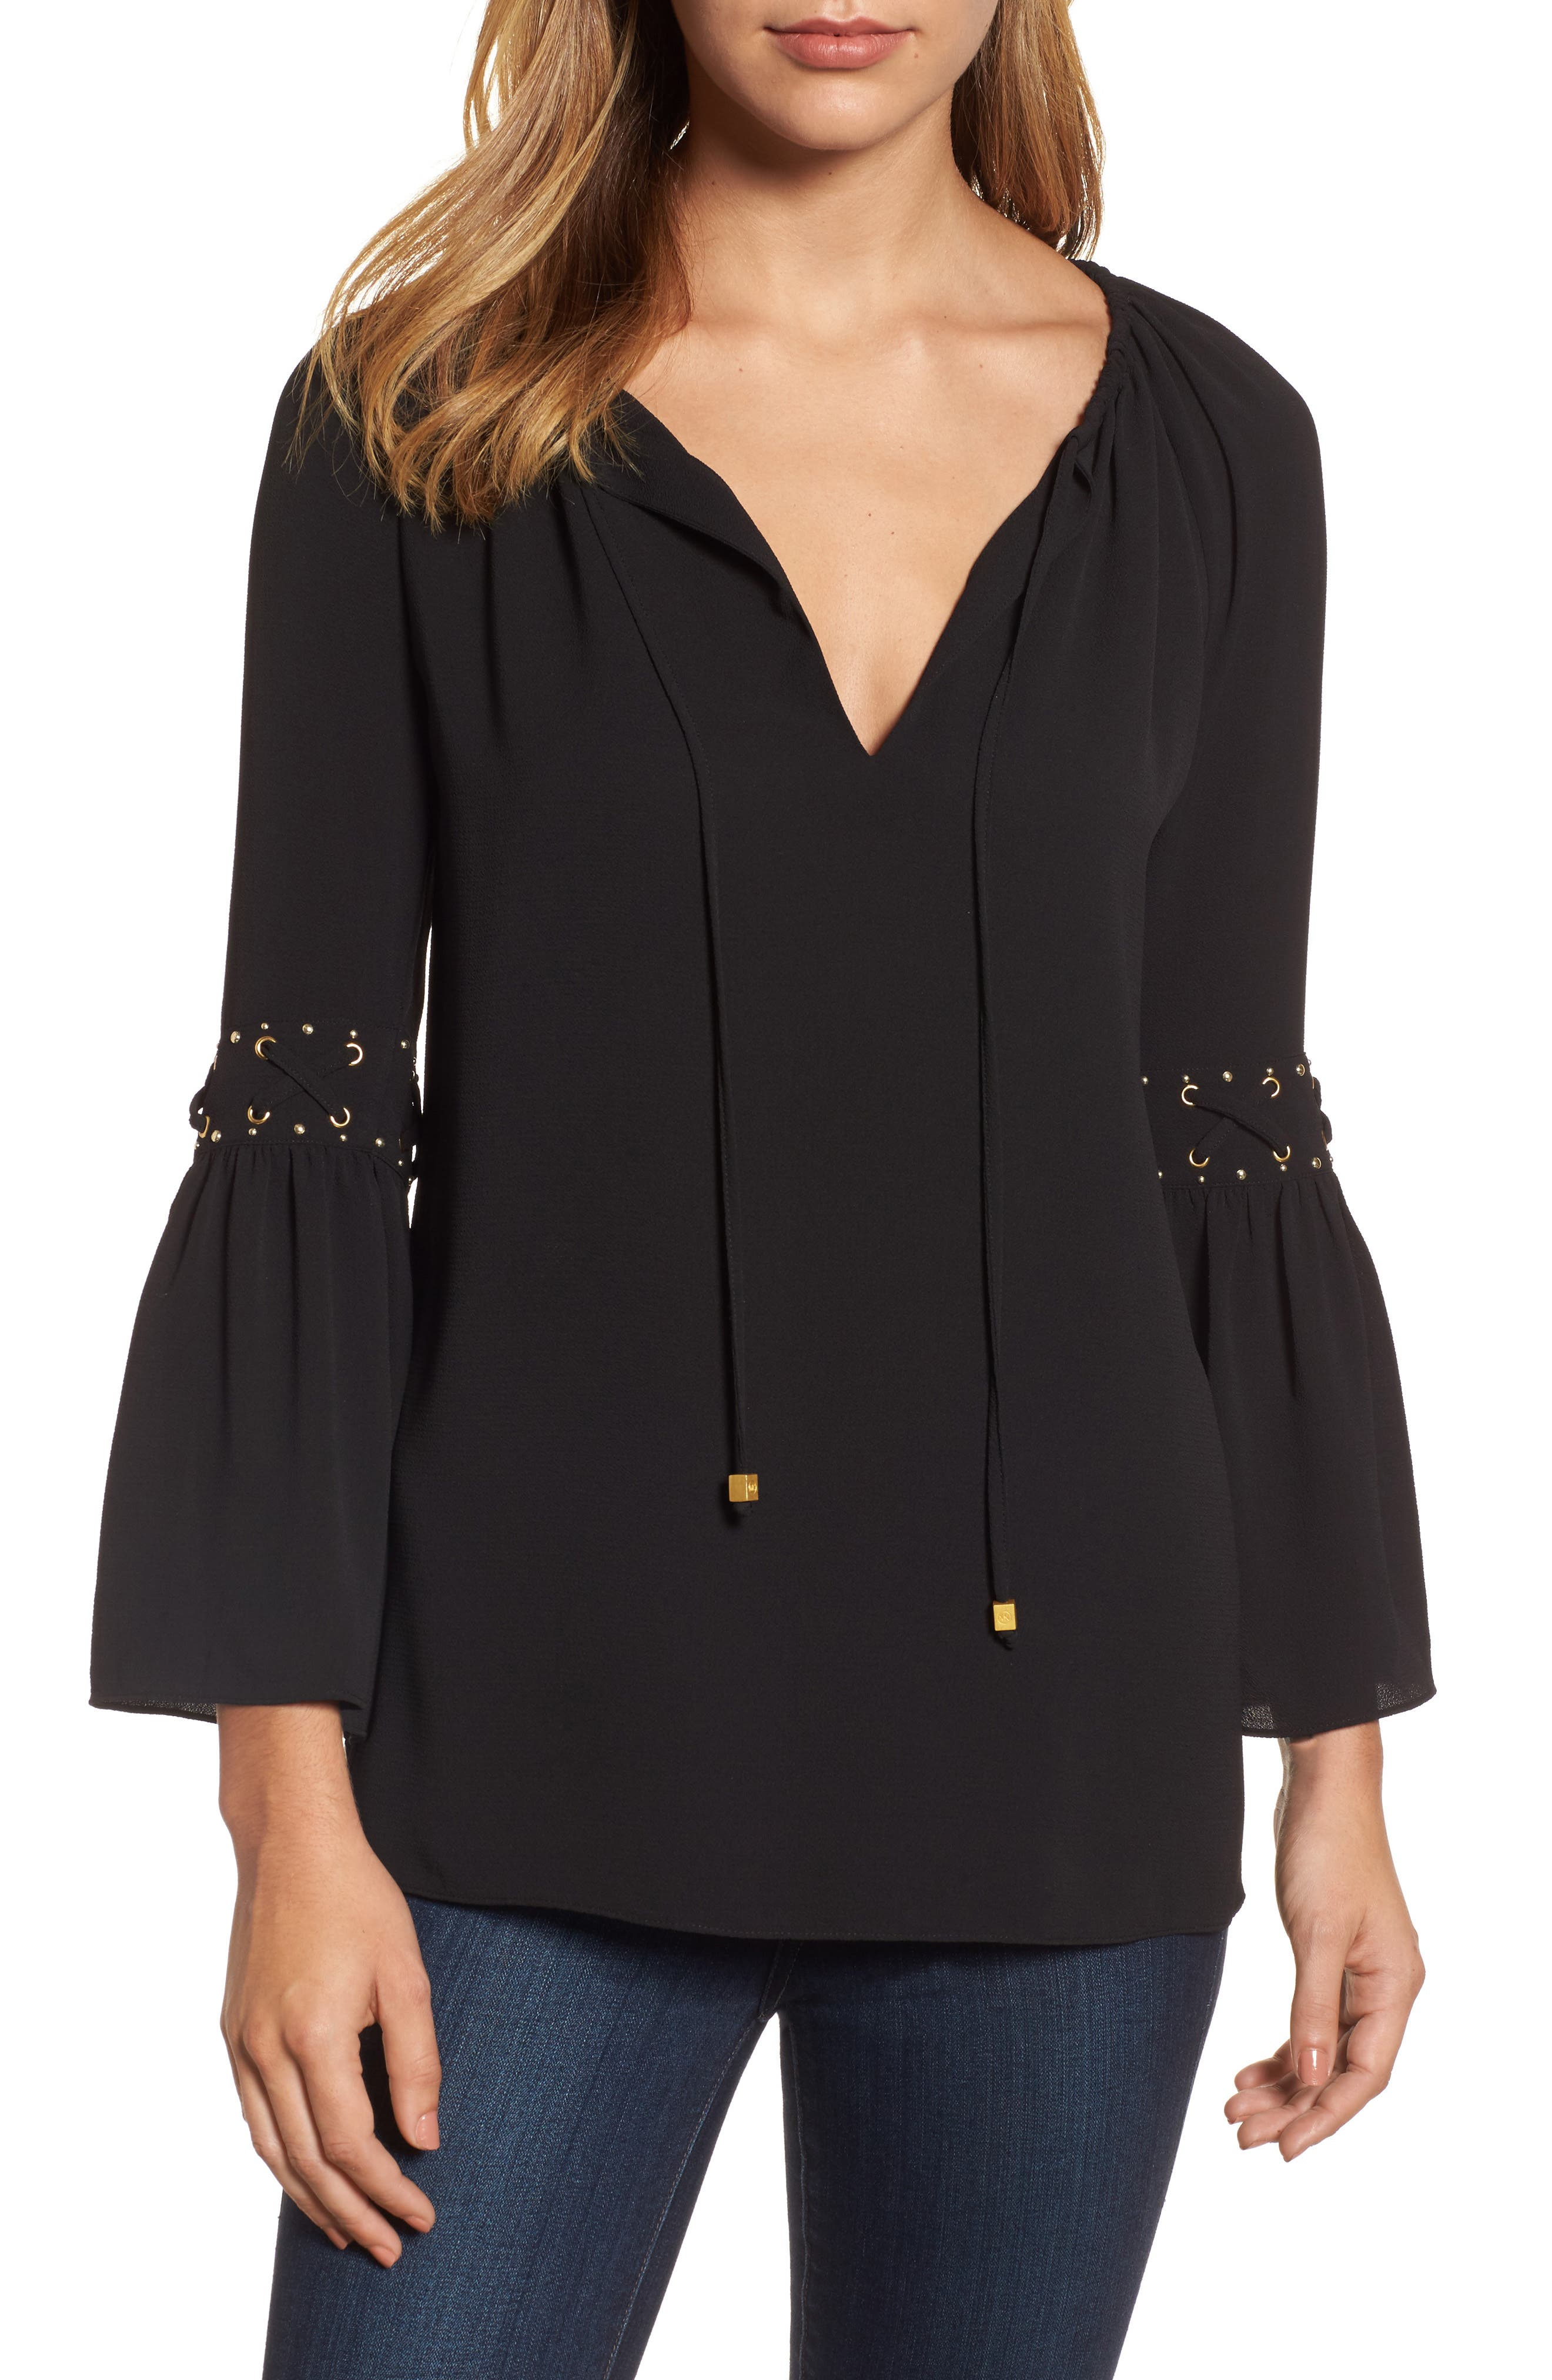 Alternate Image 1 Selected - MICHAEL Michael Kors Lace-Up Sleeve Top